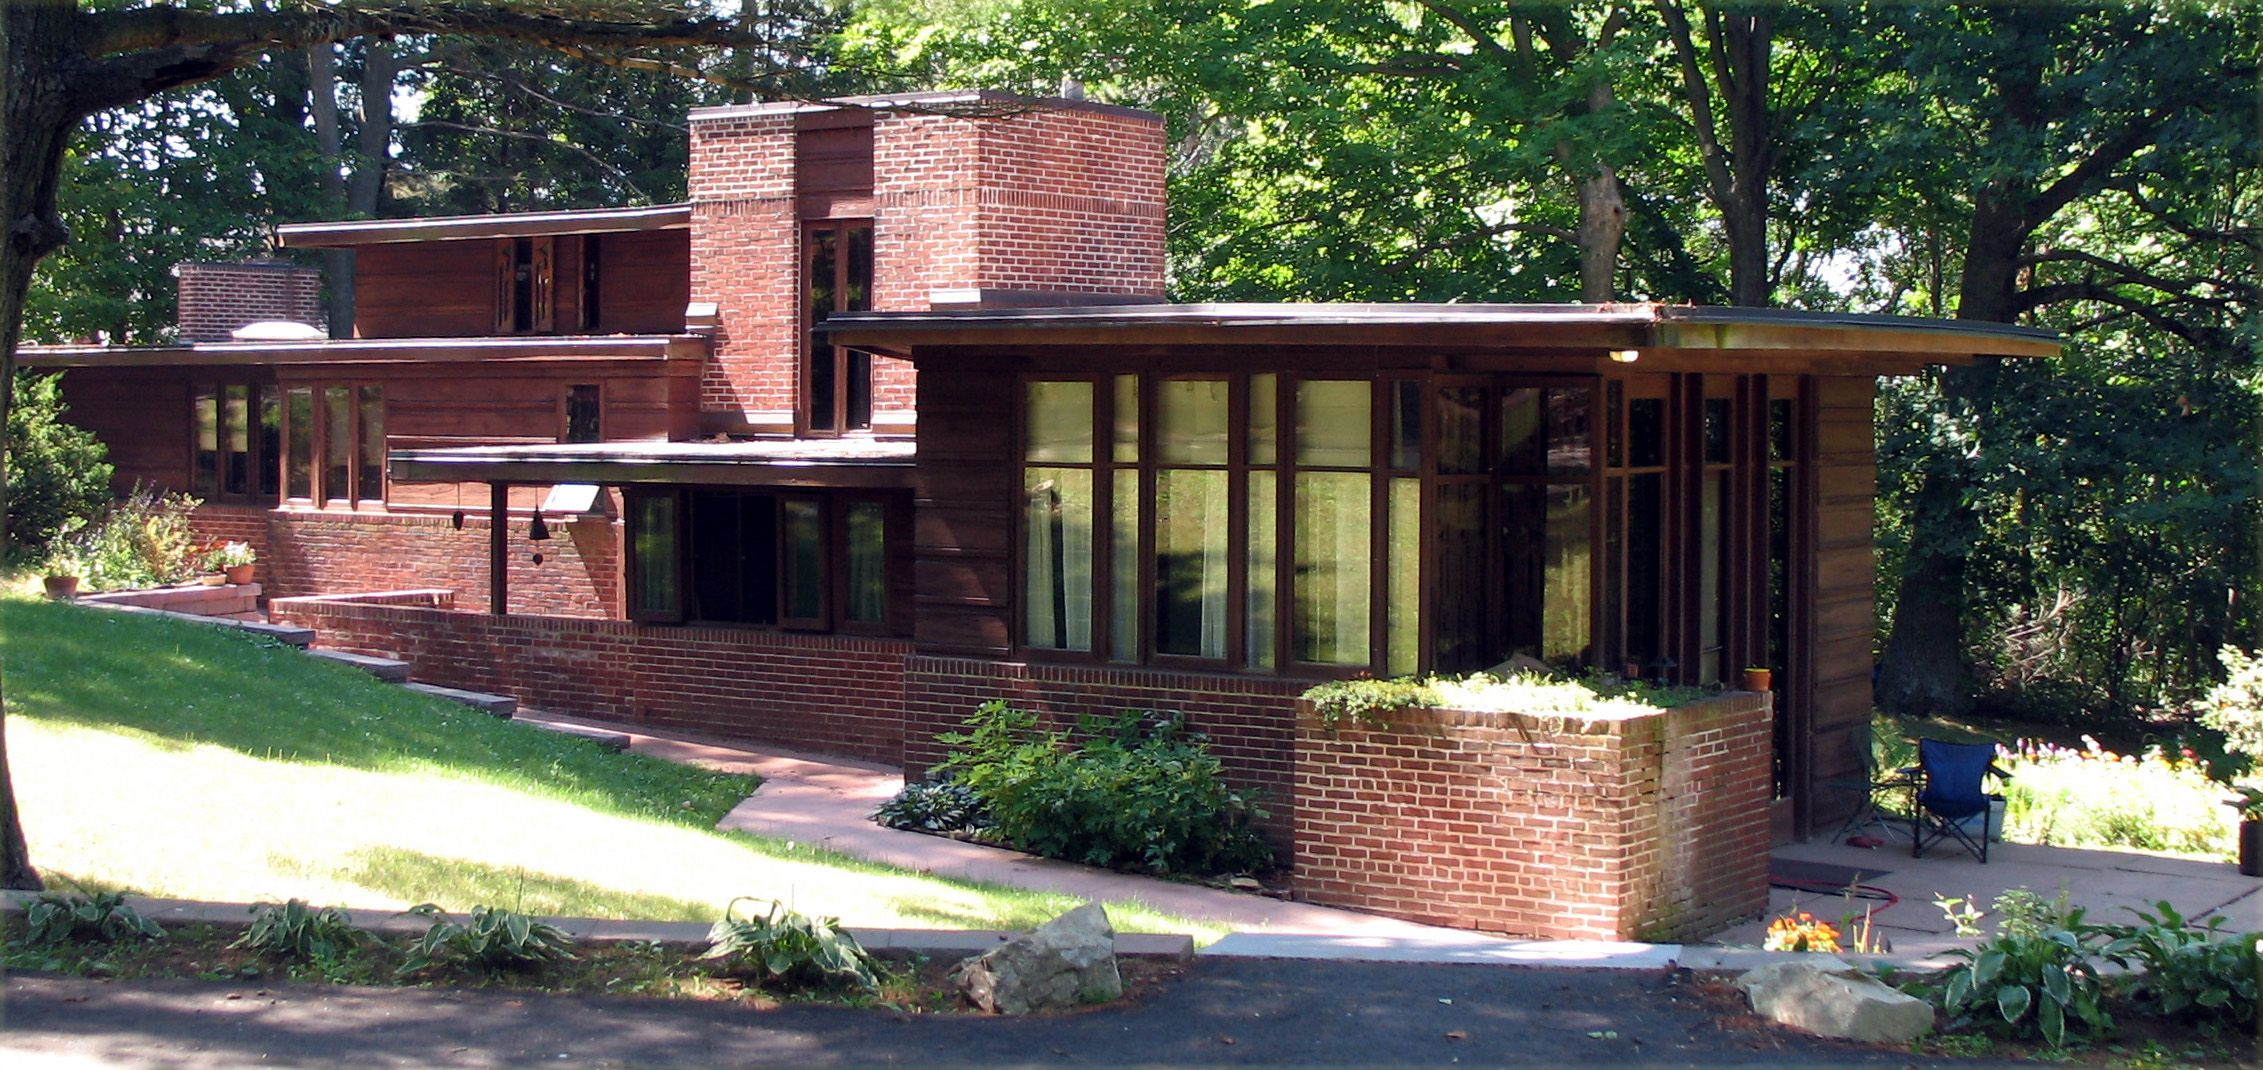 Frank Lloyd Wright Prairie Houses charles l. manson house - wikipedia, the free encyclopedia | frank